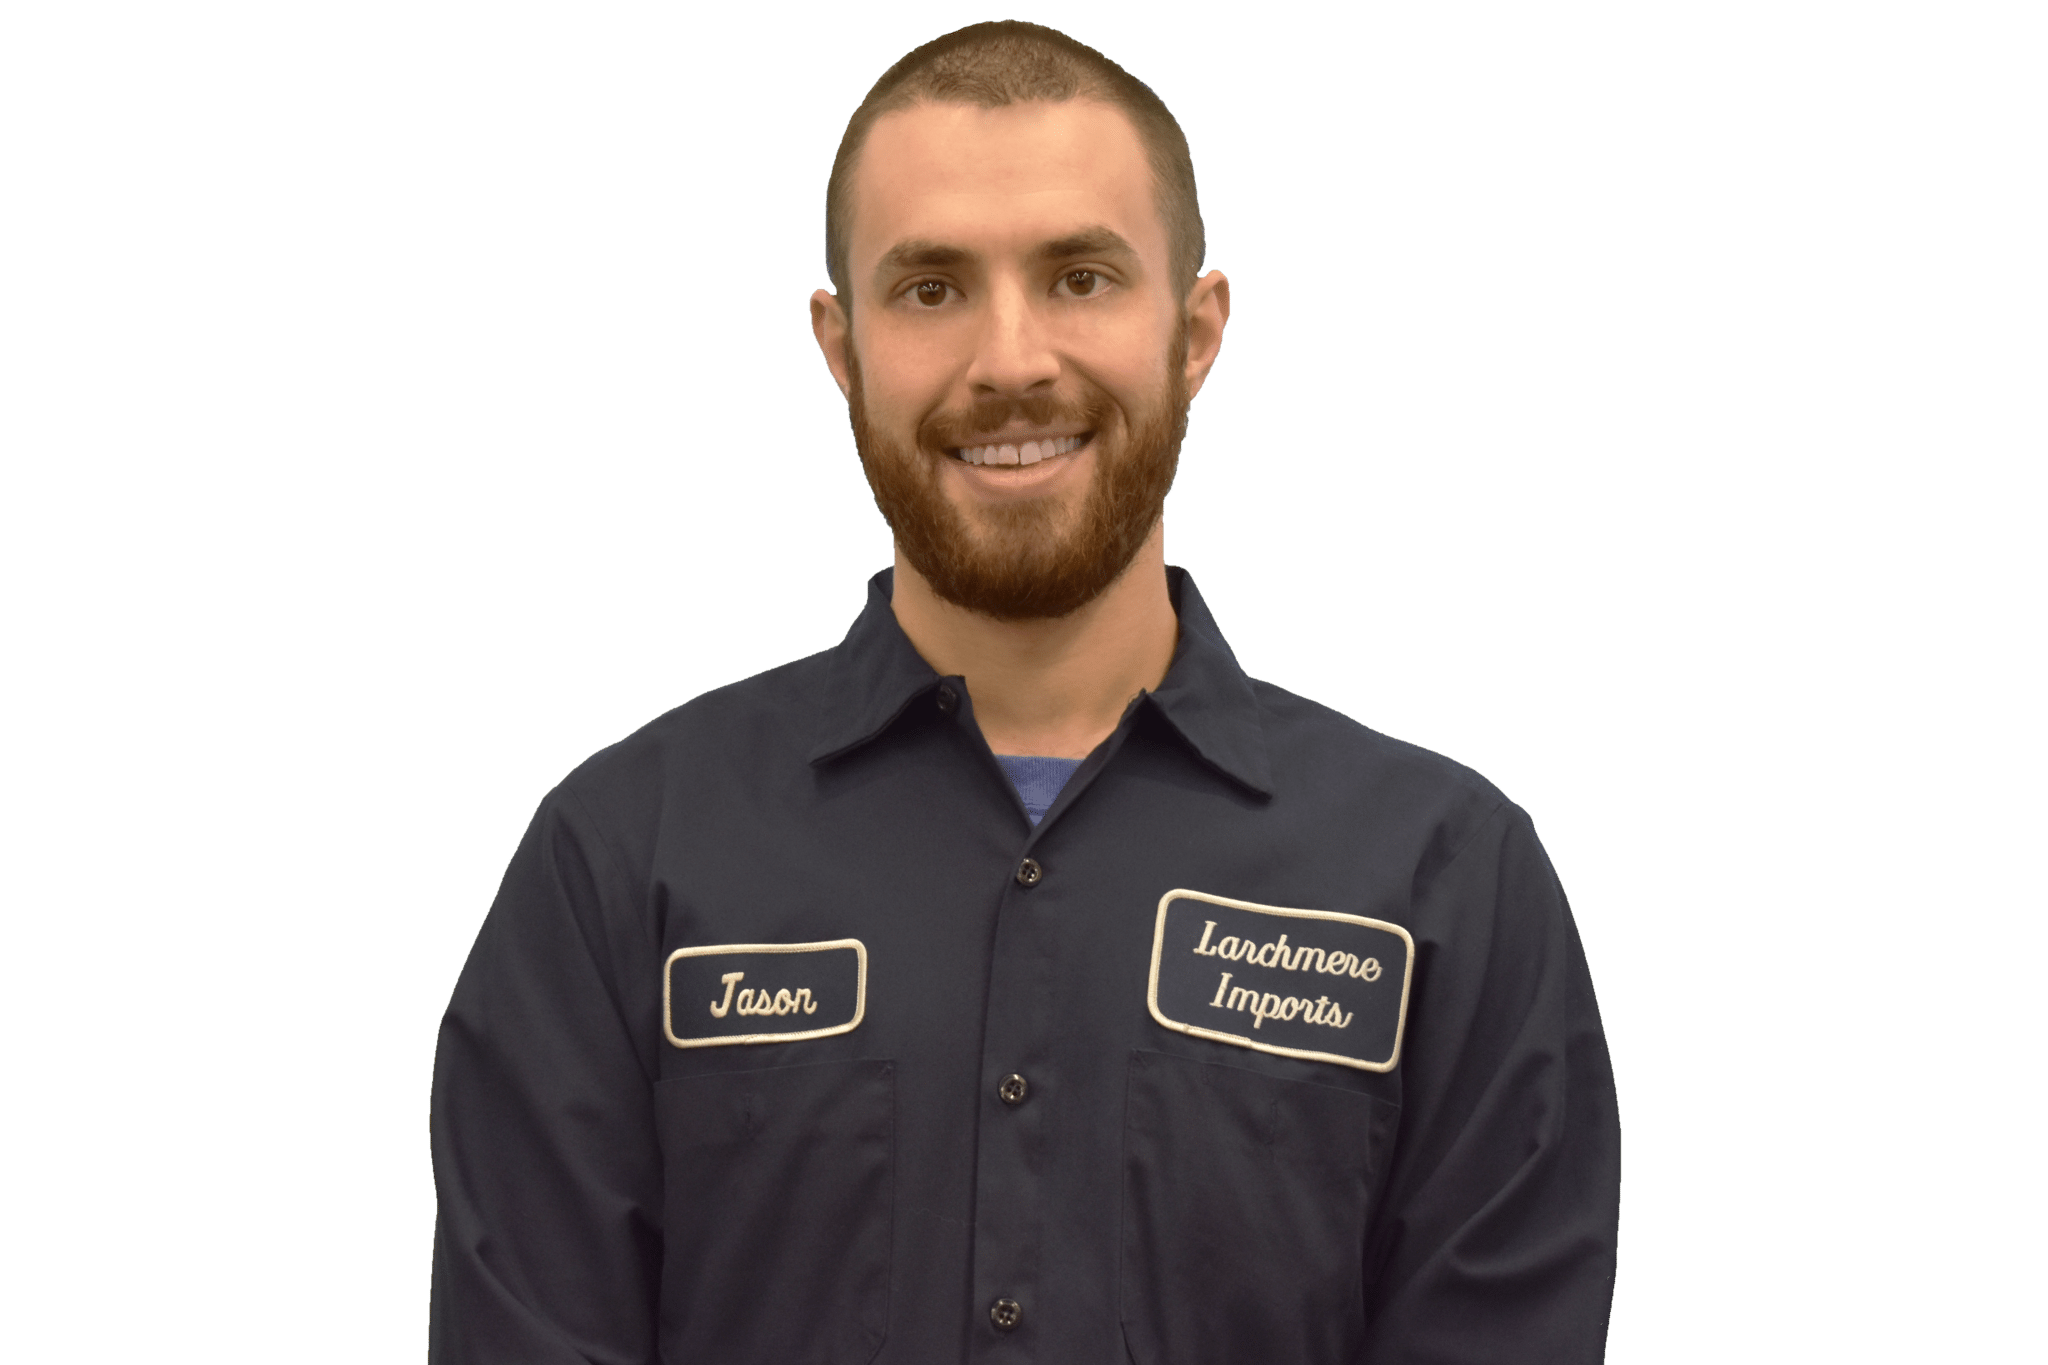 Jason Kiner Auto Repair Technician Larchmere Imports Cleveland